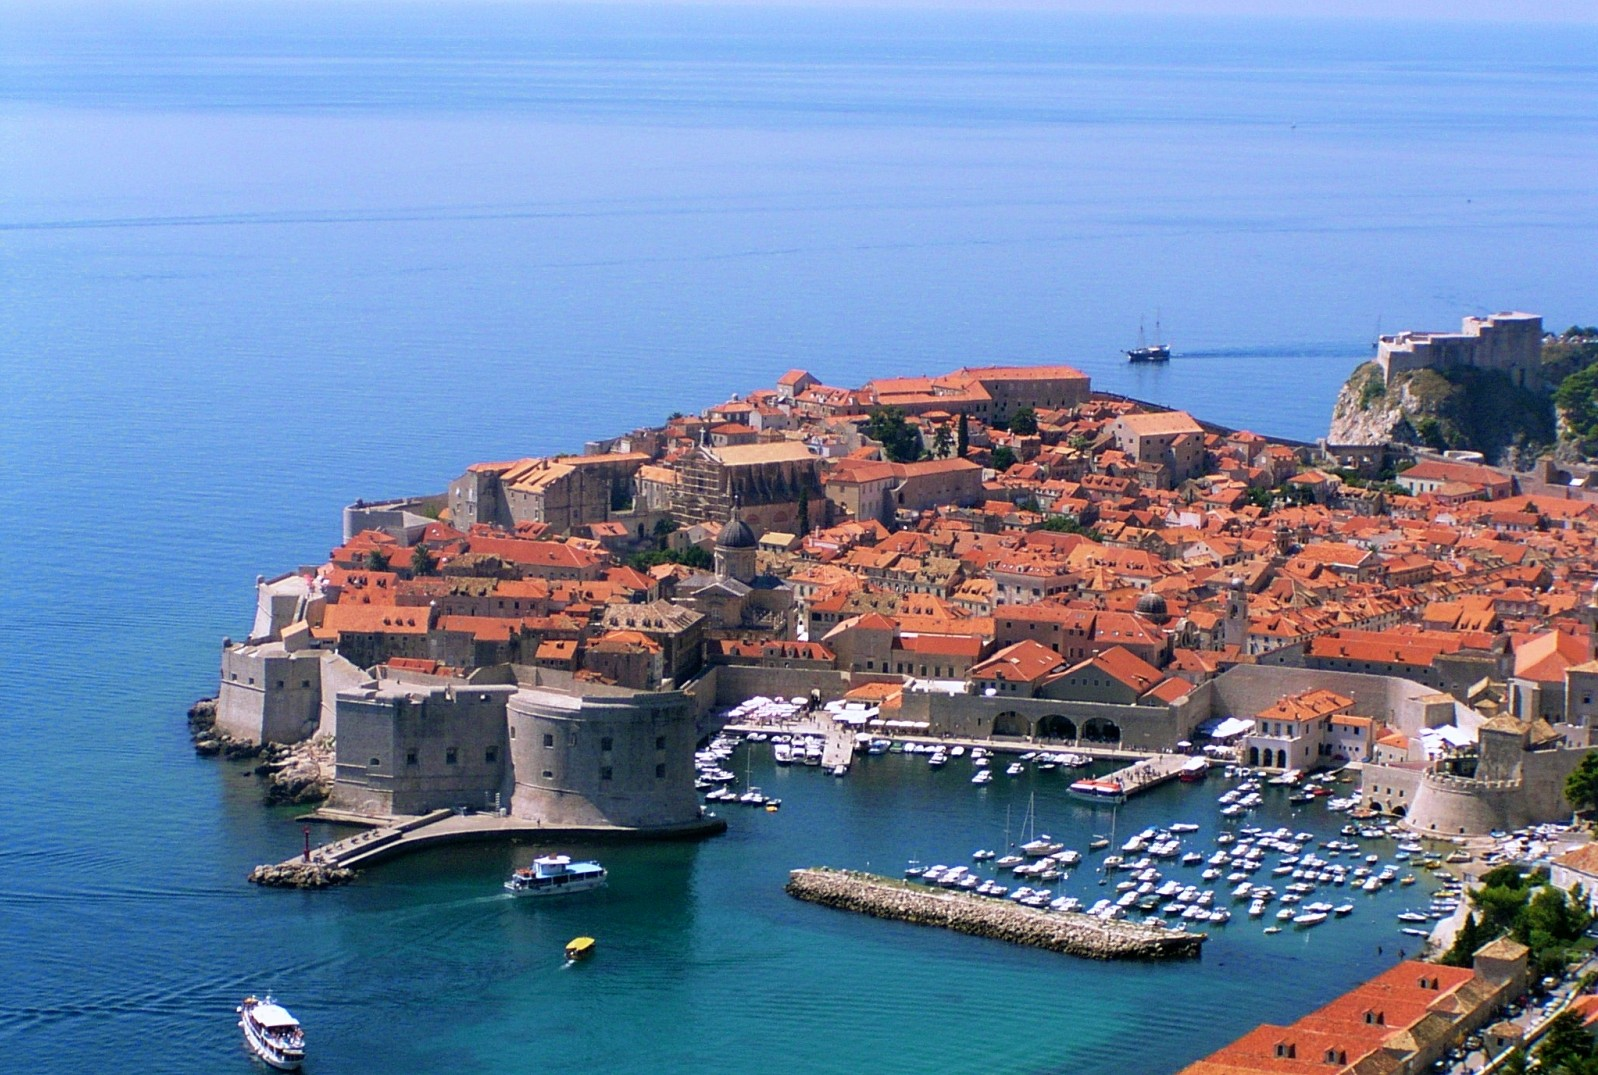 The view over the old town of Dubrovnik